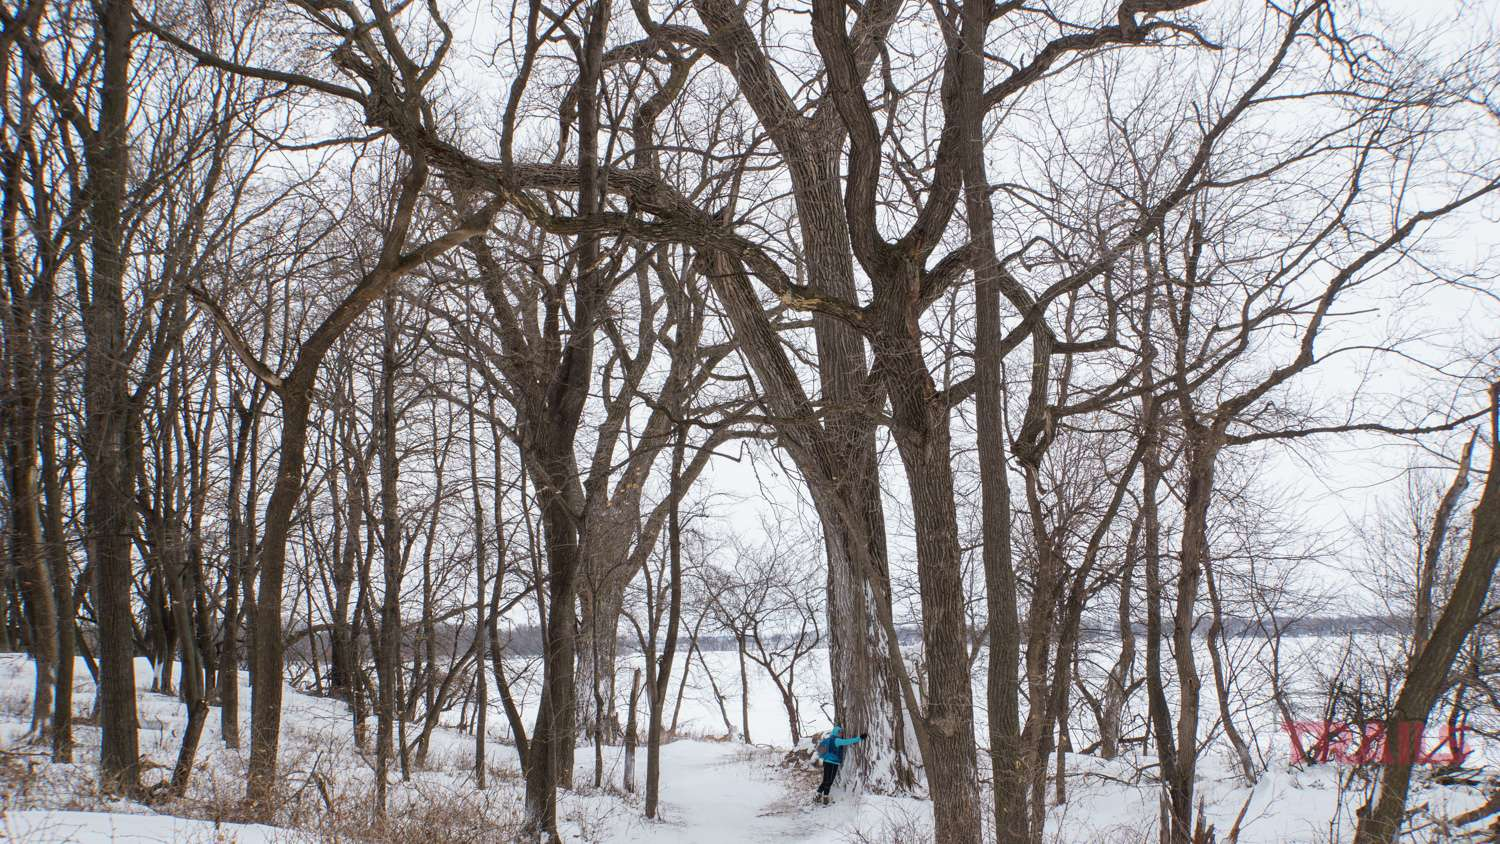 A woman puts her arms around the trunk of a huge cottonwood tree in the winter